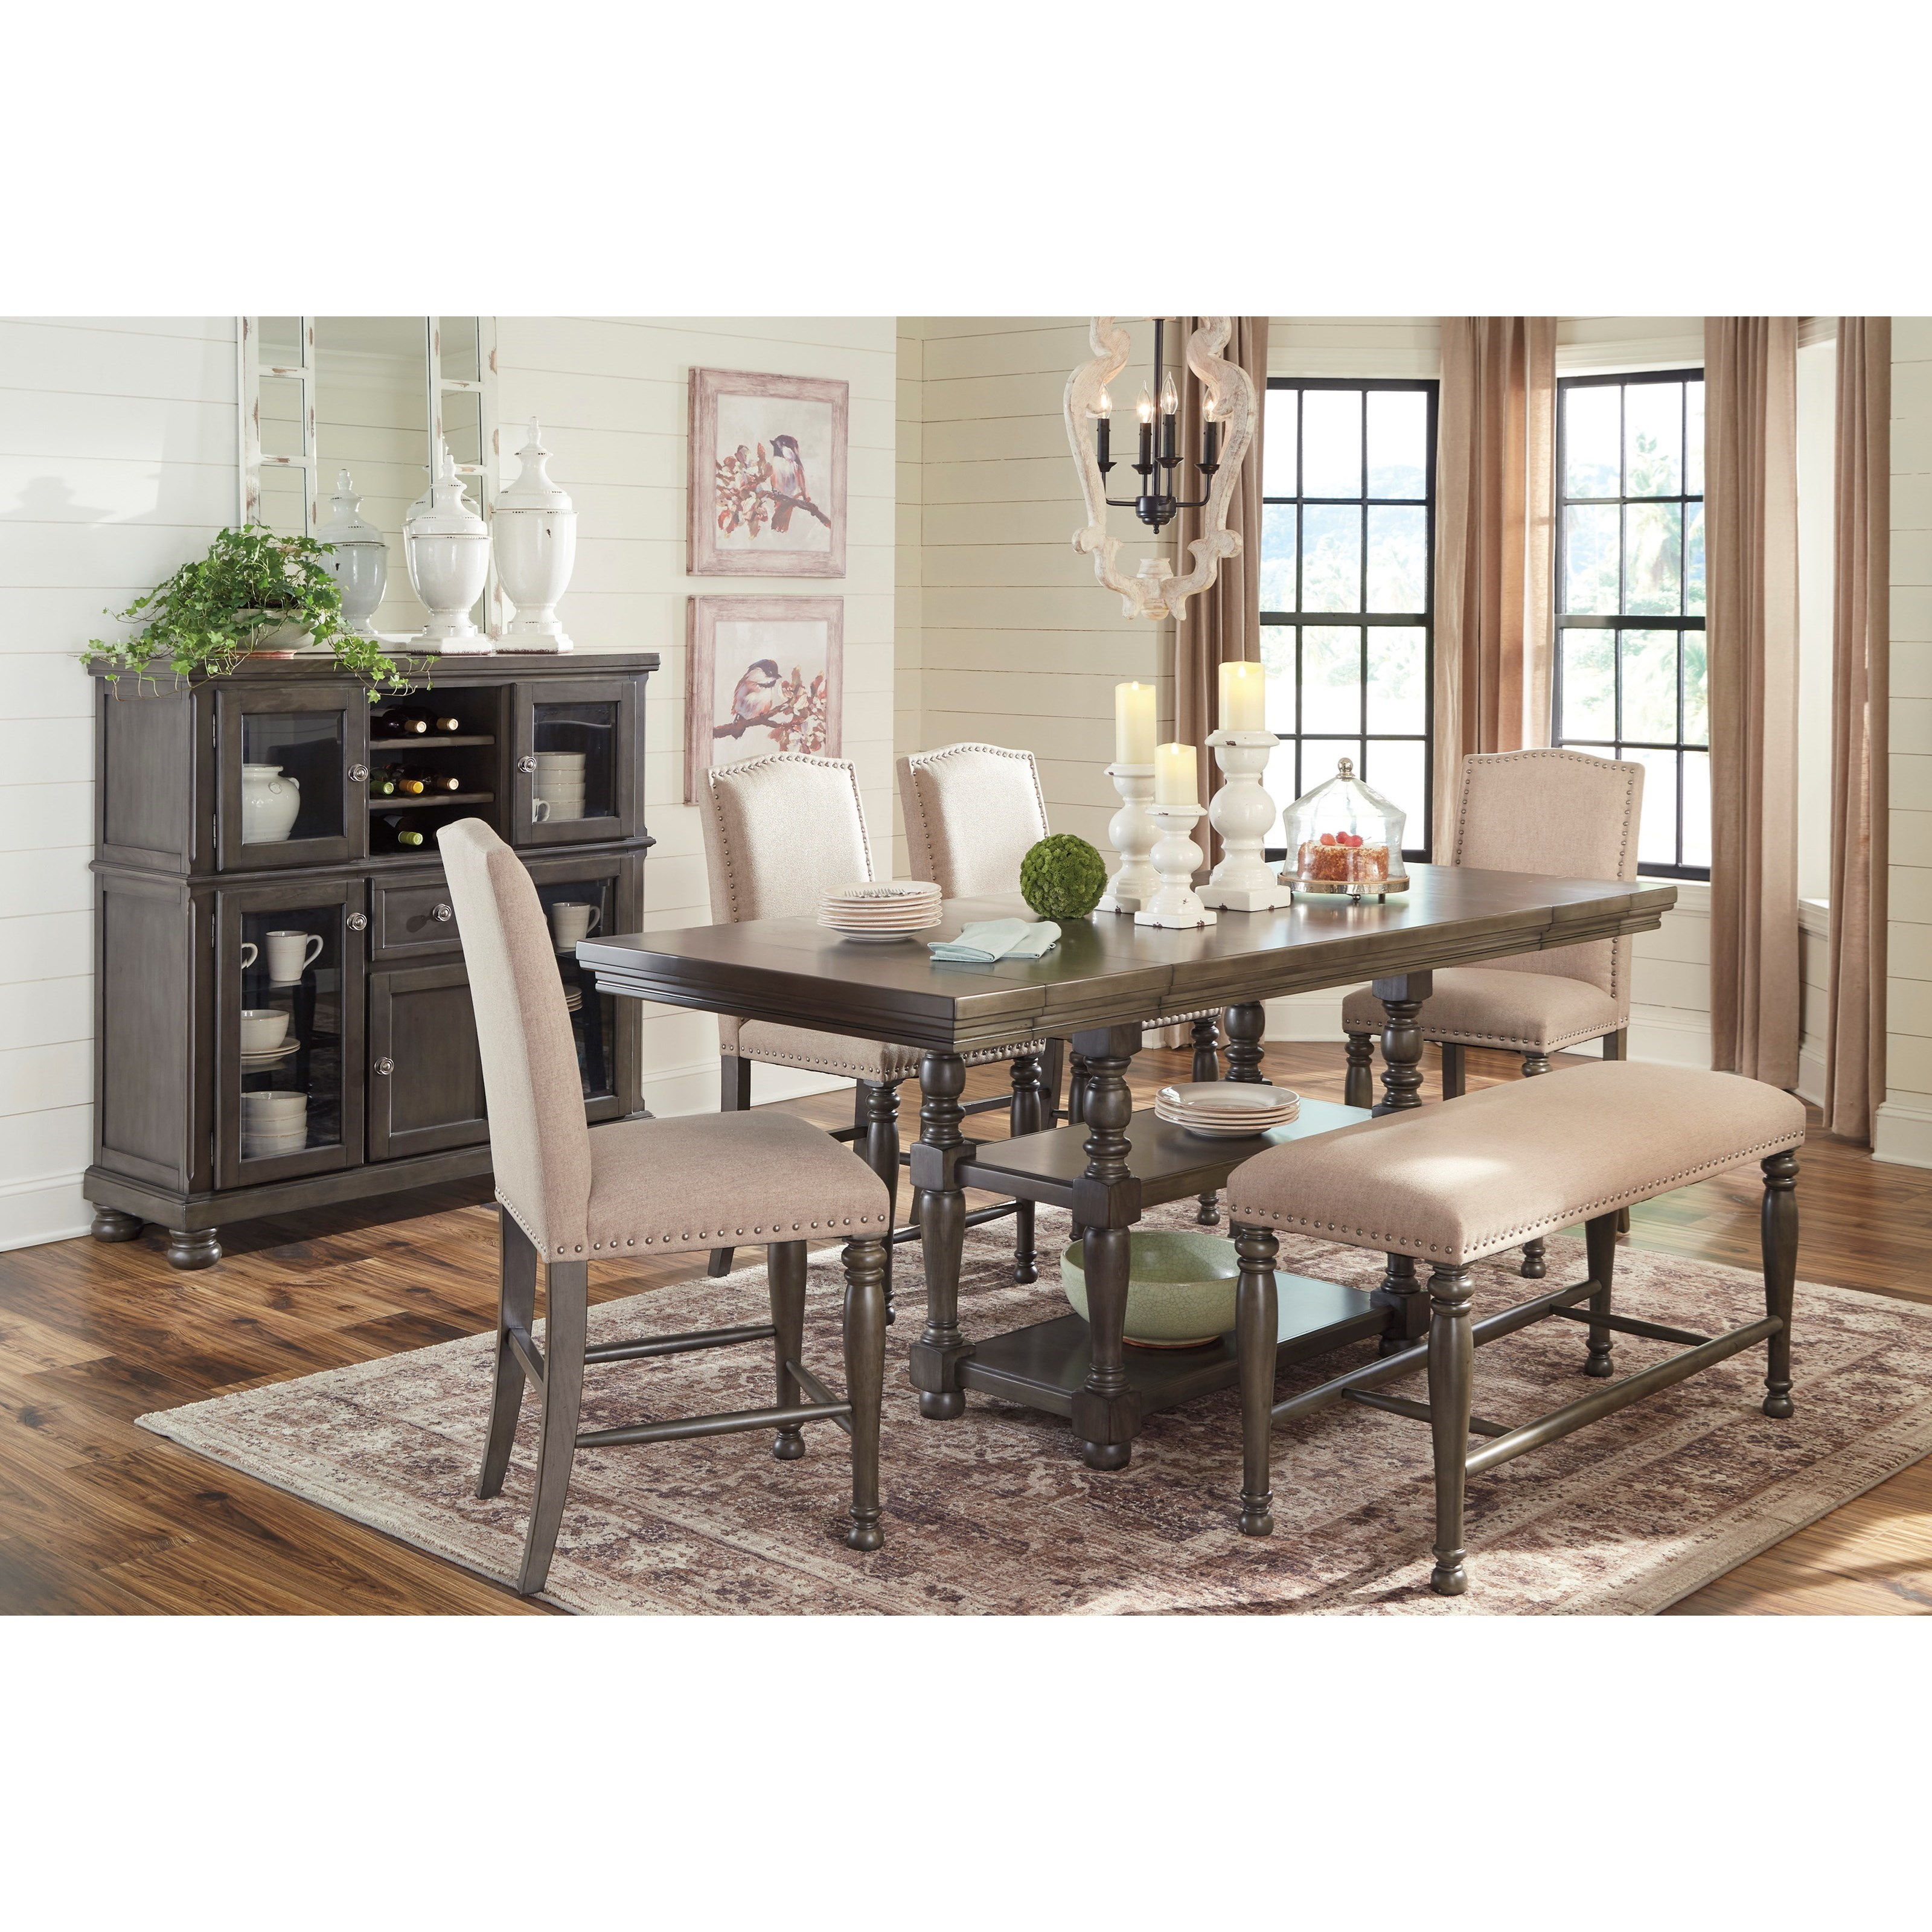 Signature Design By Ashley Besteneer Formal Dining Room: Signature Design By Ashley Audberry Formal Dining Room